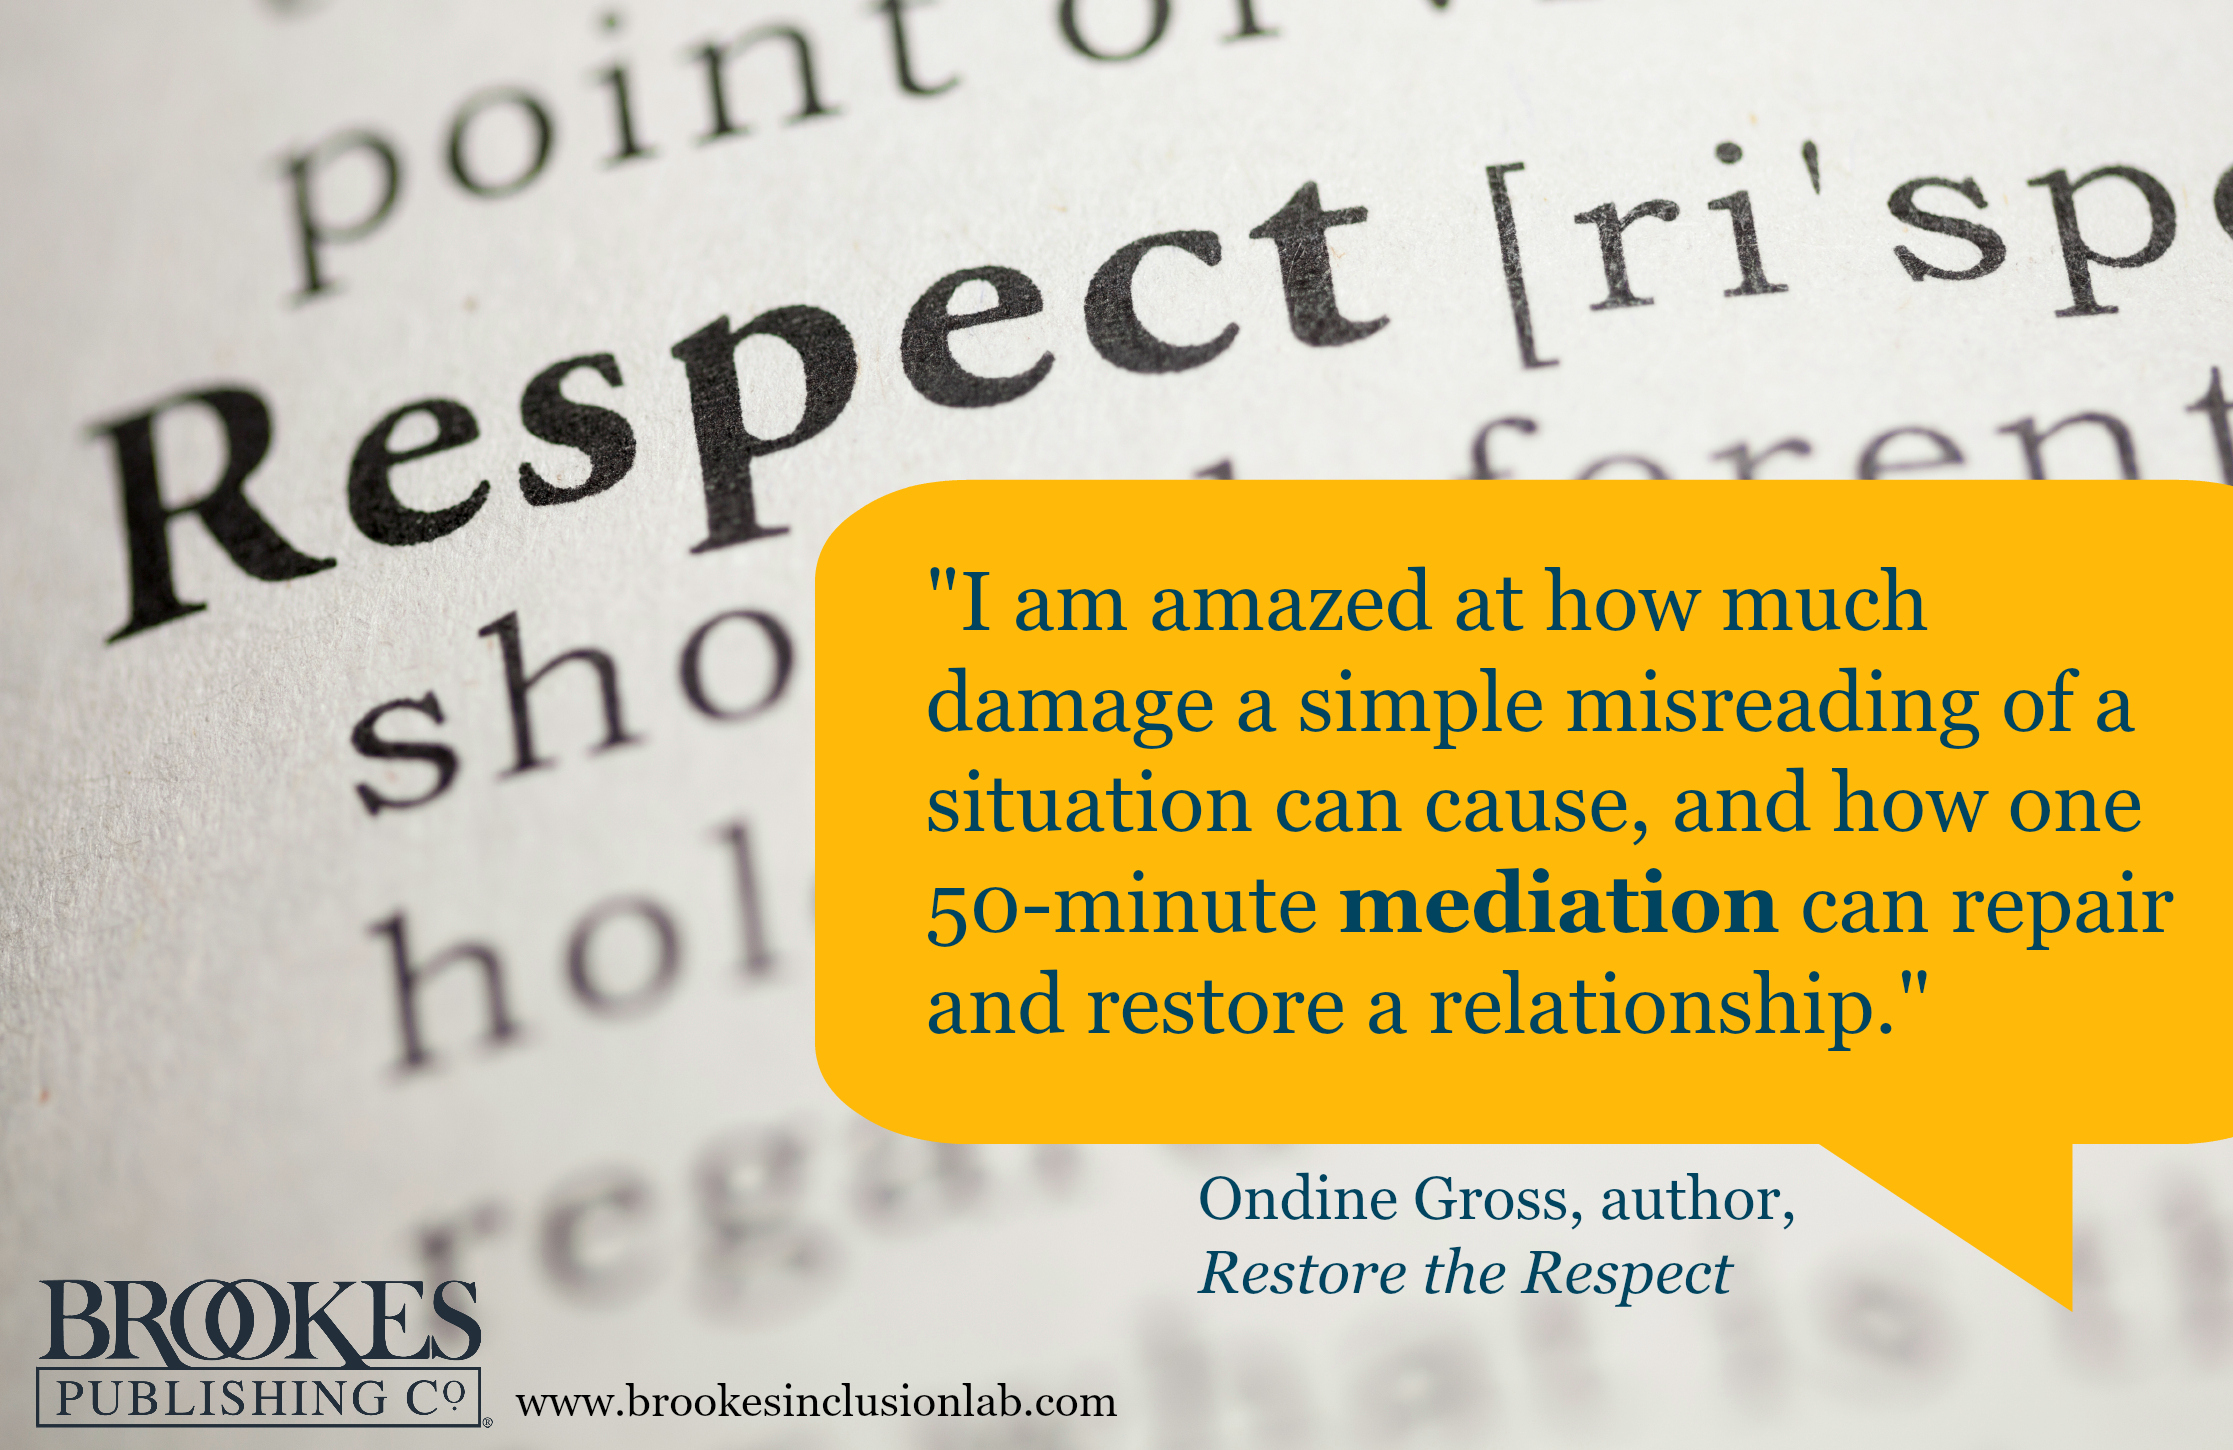 Ondine Gross Restore the Respect